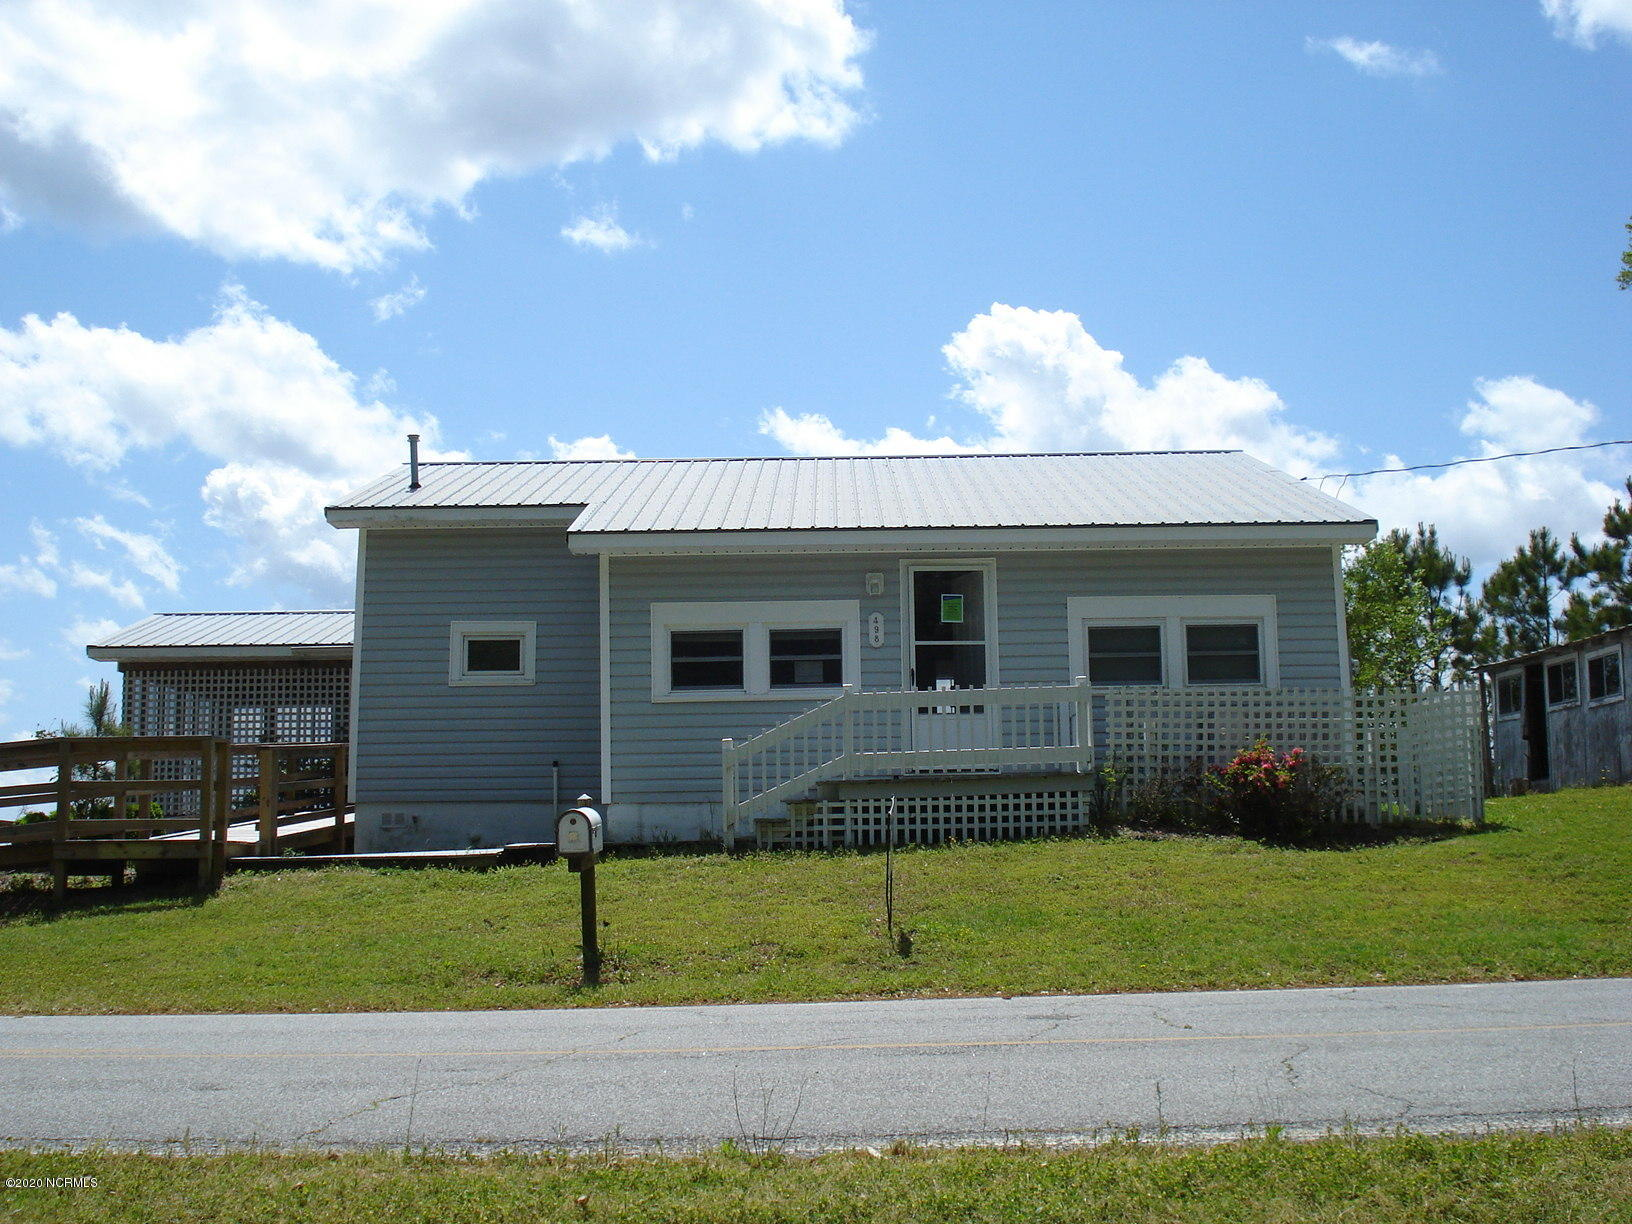 498 Old Pamlico Beach Road, Belhaven, North Carolina 27810, 2 Bedrooms Bedrooms, 5 Rooms Rooms,1 BathroomBathrooms,Single family residence,For sale,Old Pamlico Beach,100179588